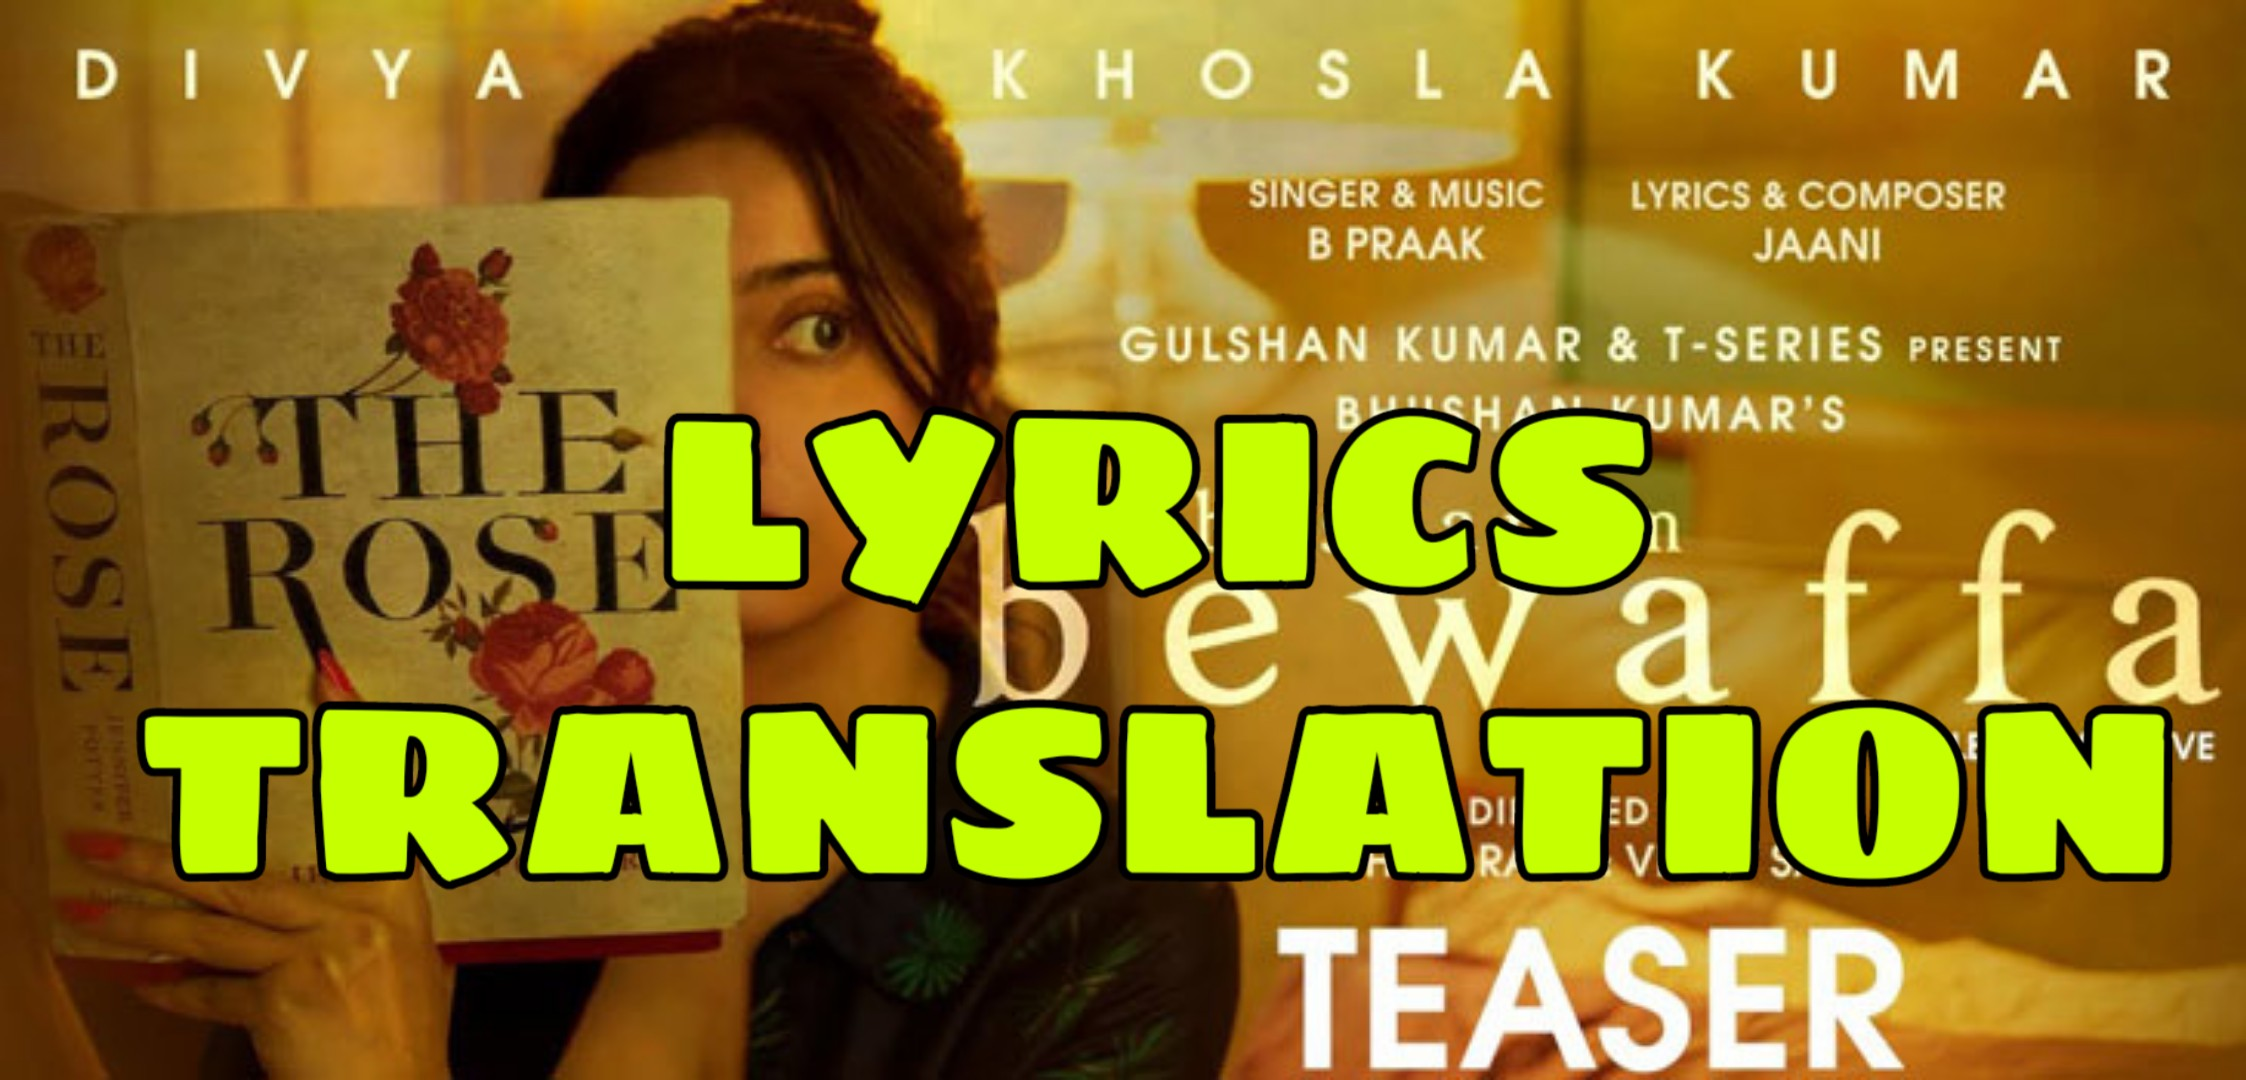 Besharam Bewaffa Lyrics In English With Translation B Praak Given below is the list of hindi movies which we have translated into english. besharam bewaffa lyrics in english